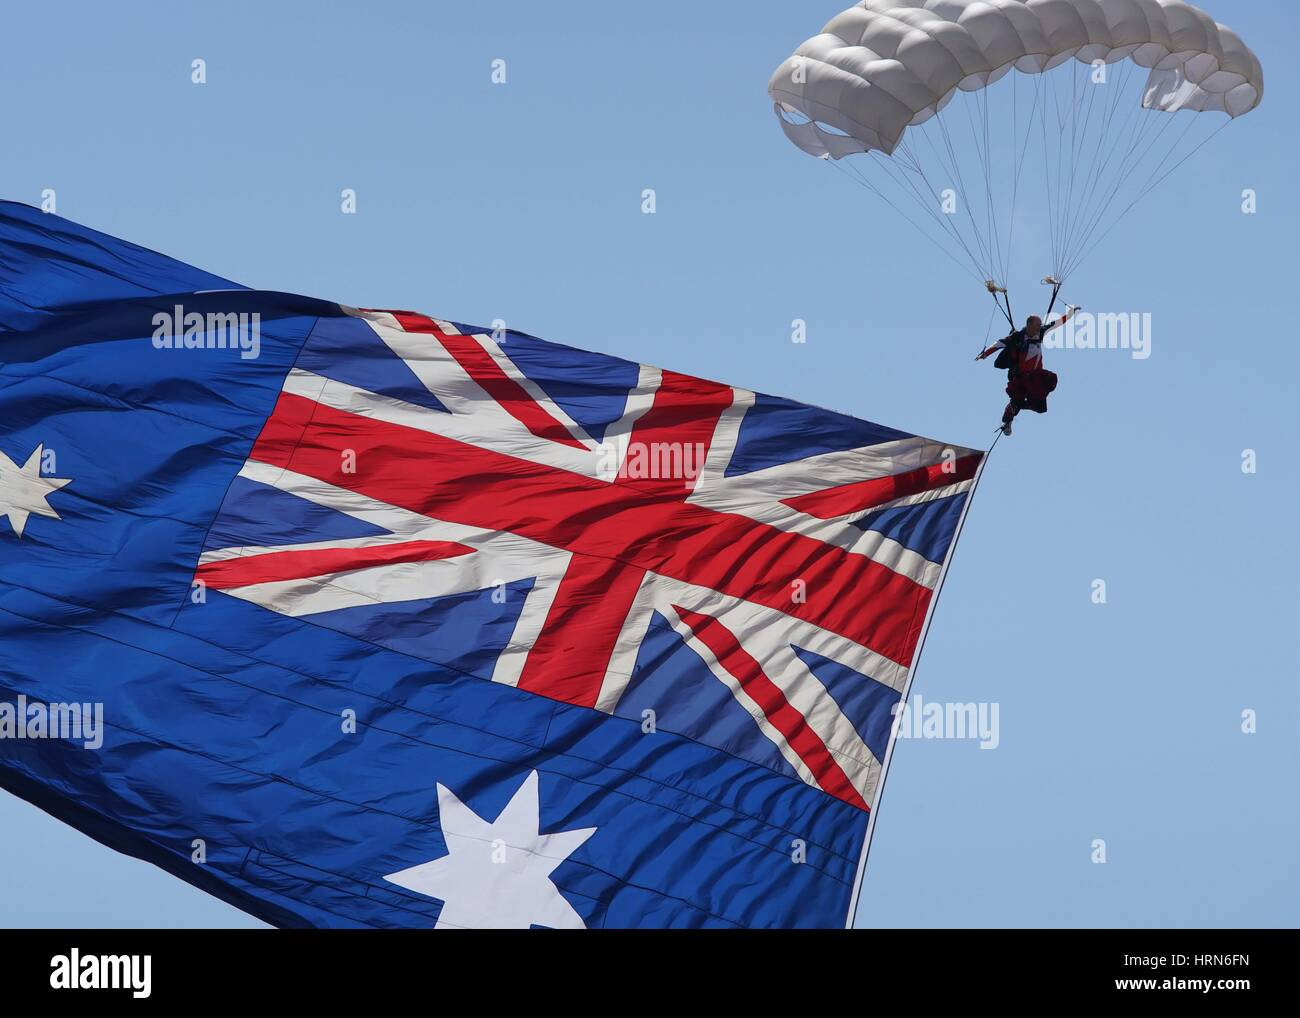 Melbourne, Australia. 3rd Mar, 2017. Photo taken on March 3, 2017 shows skydiving performance during the Australian Stock Photo